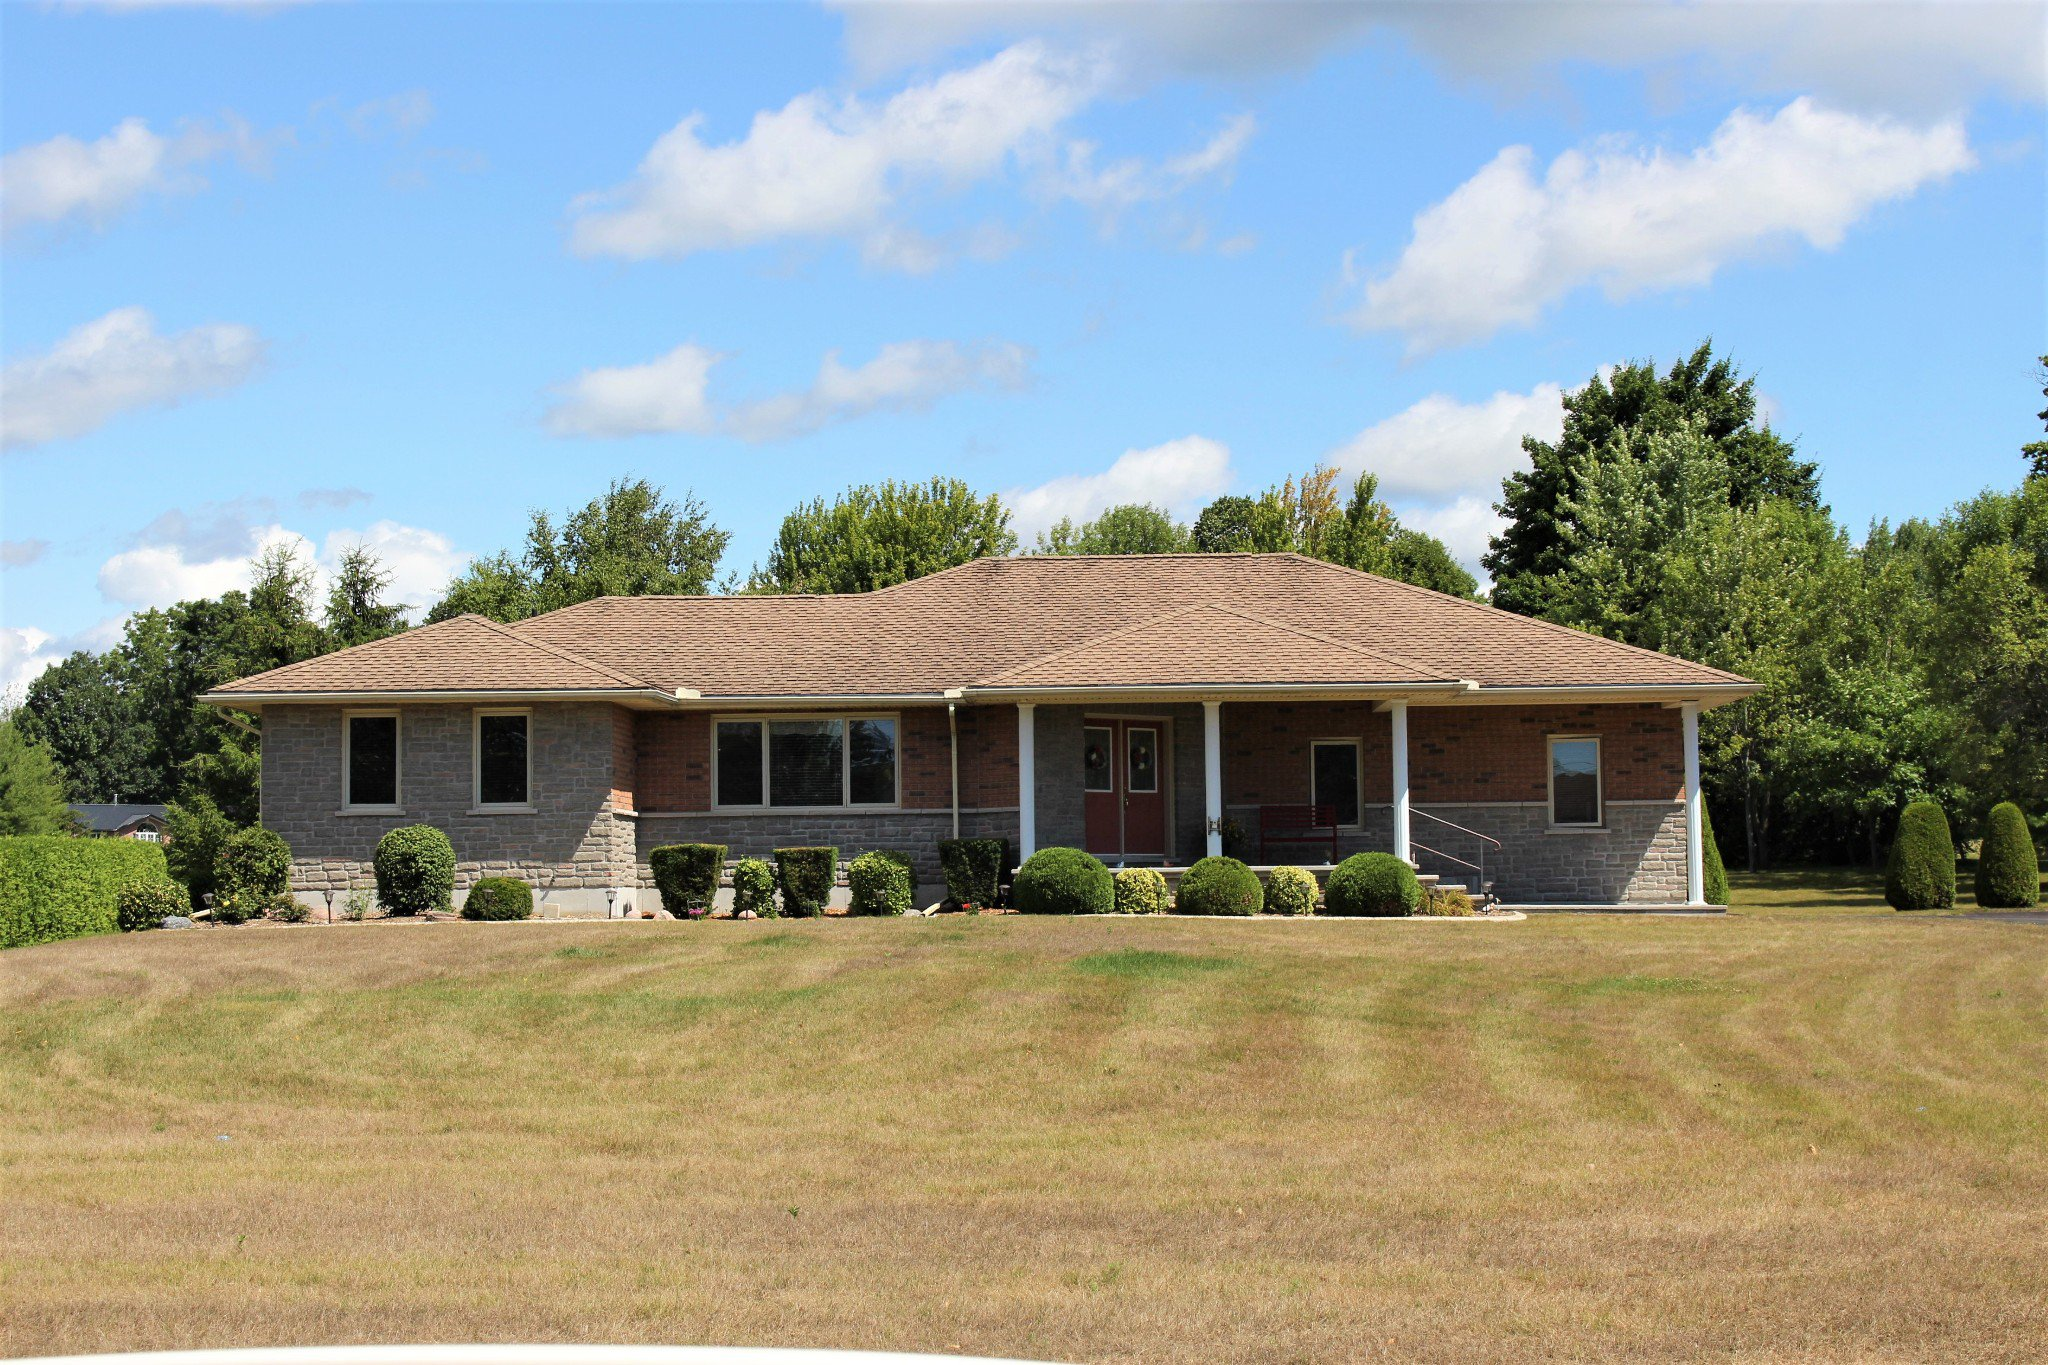 Photo 54: Photos: 159 Nawautin Drive in Grafton: Residential Detached for sale : MLS®# 40012652